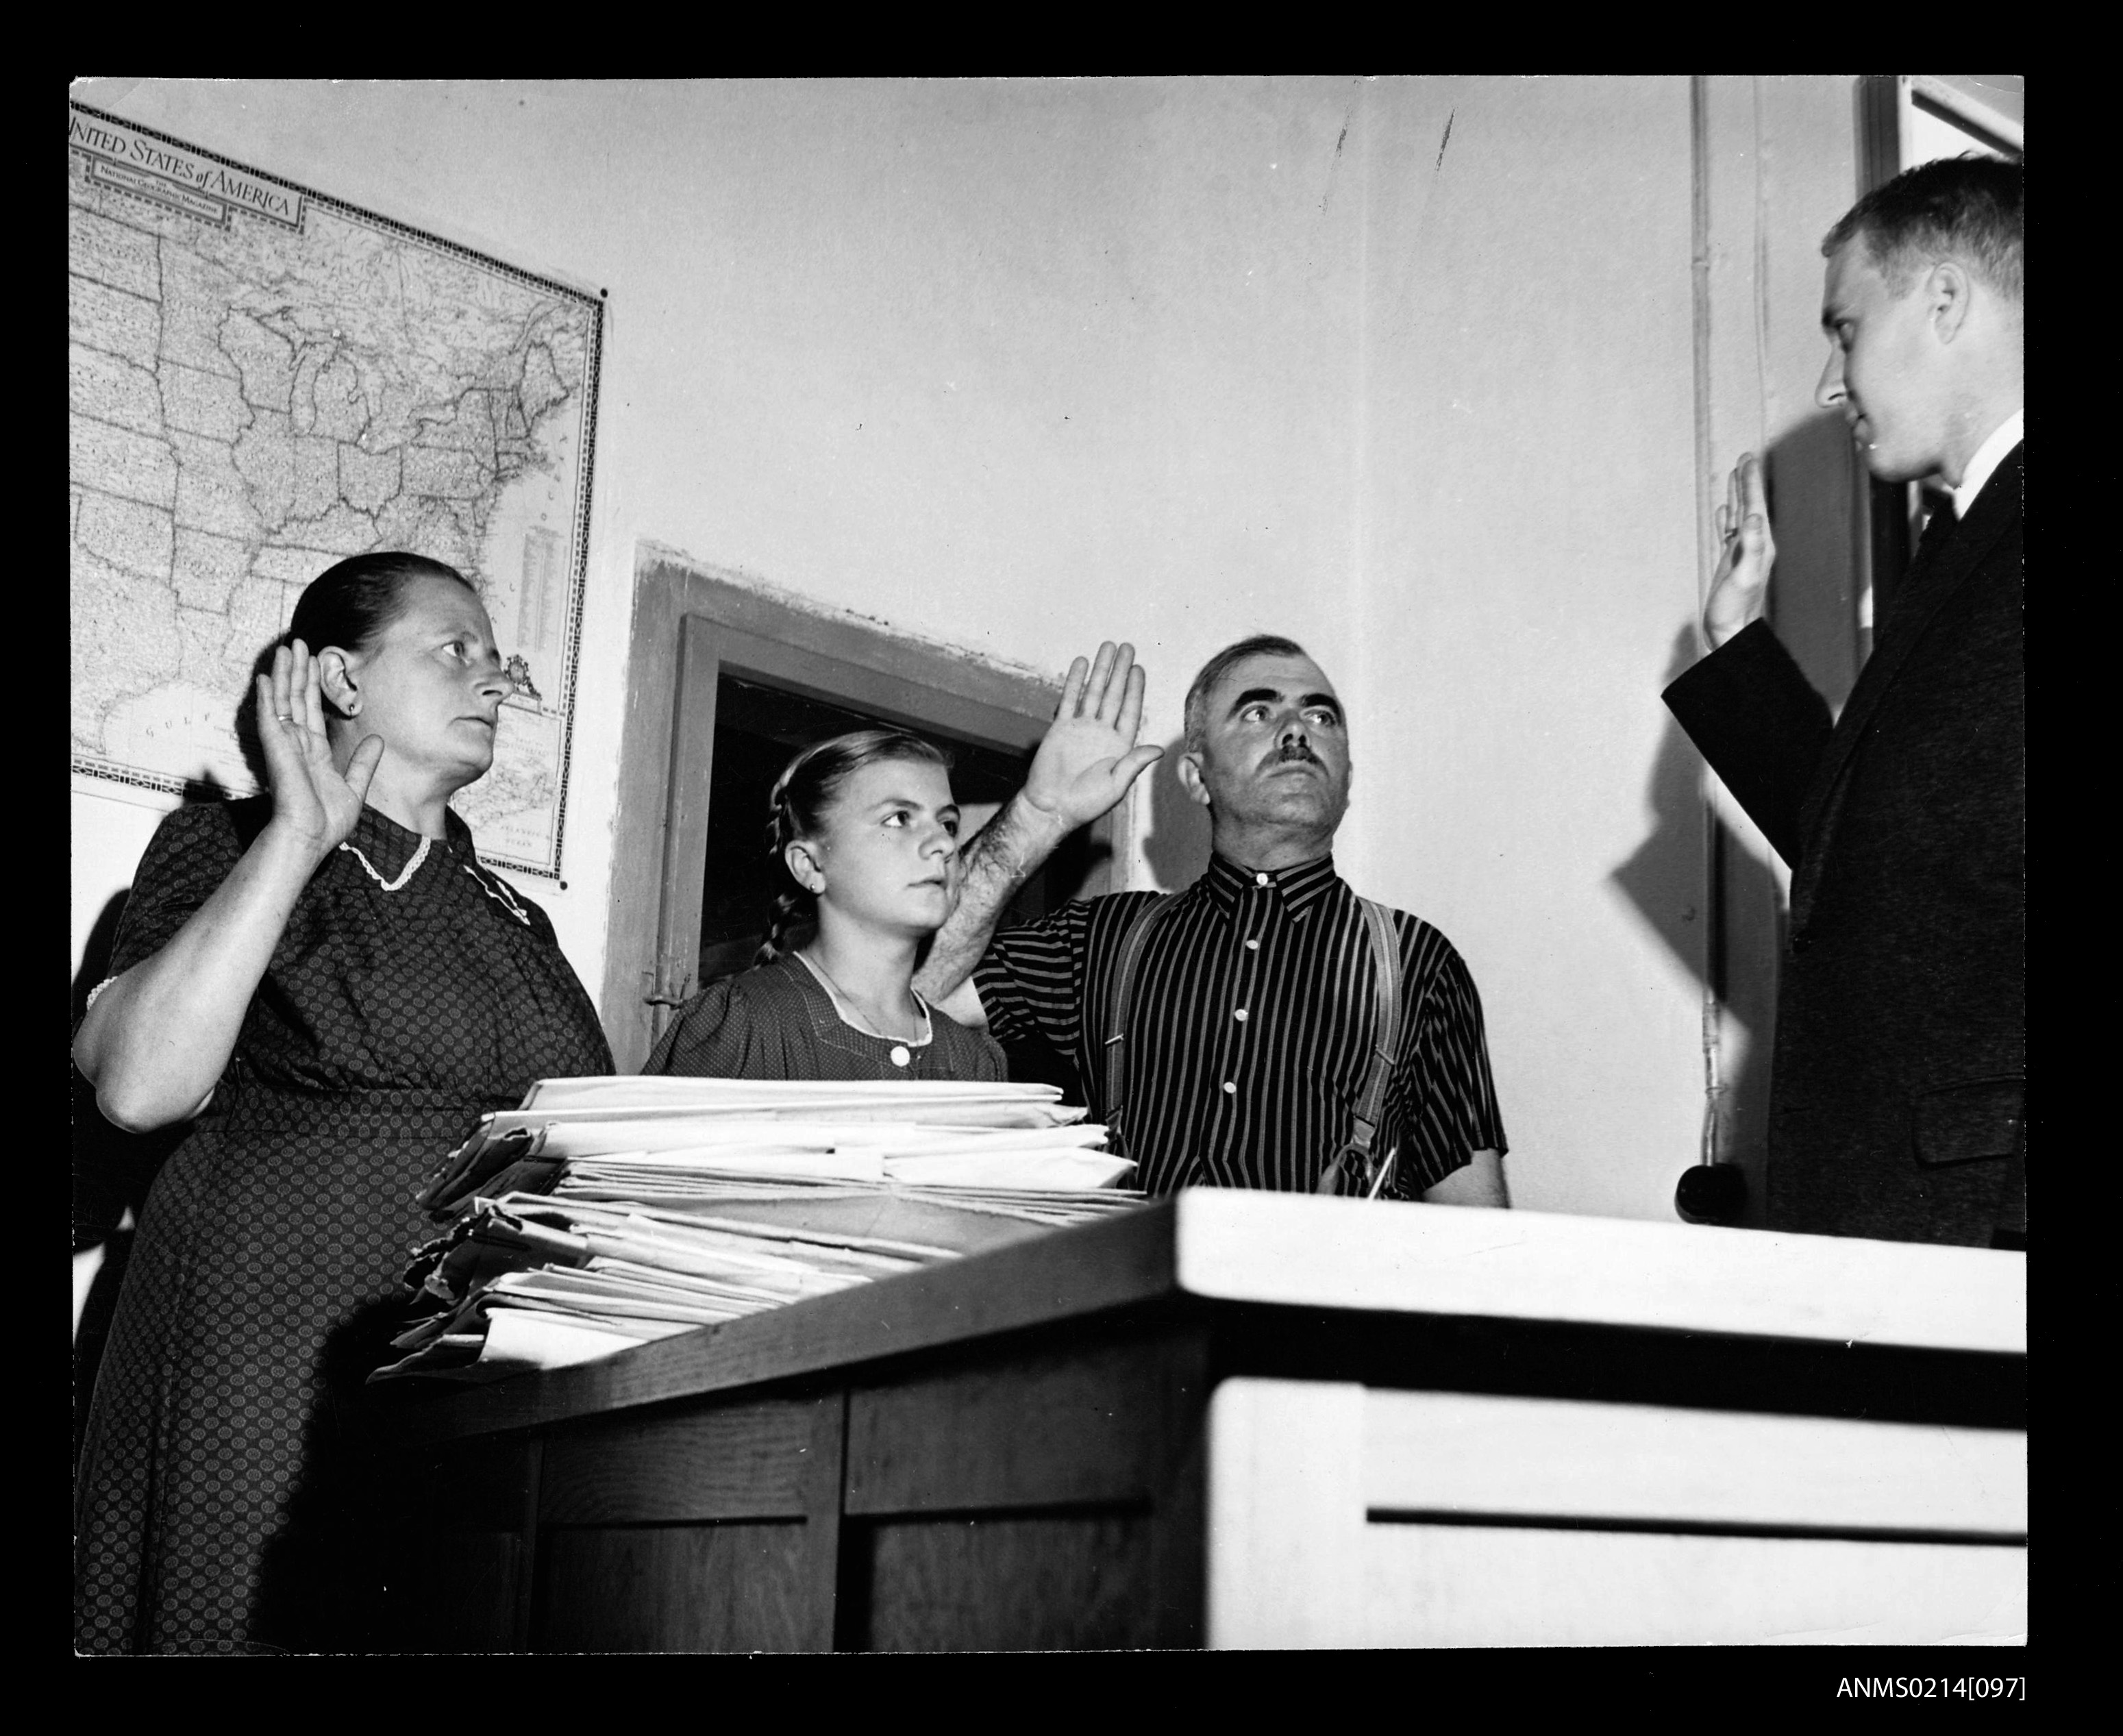 The Schimpf family take the oath for a US visa, Salzburg (8411912099)